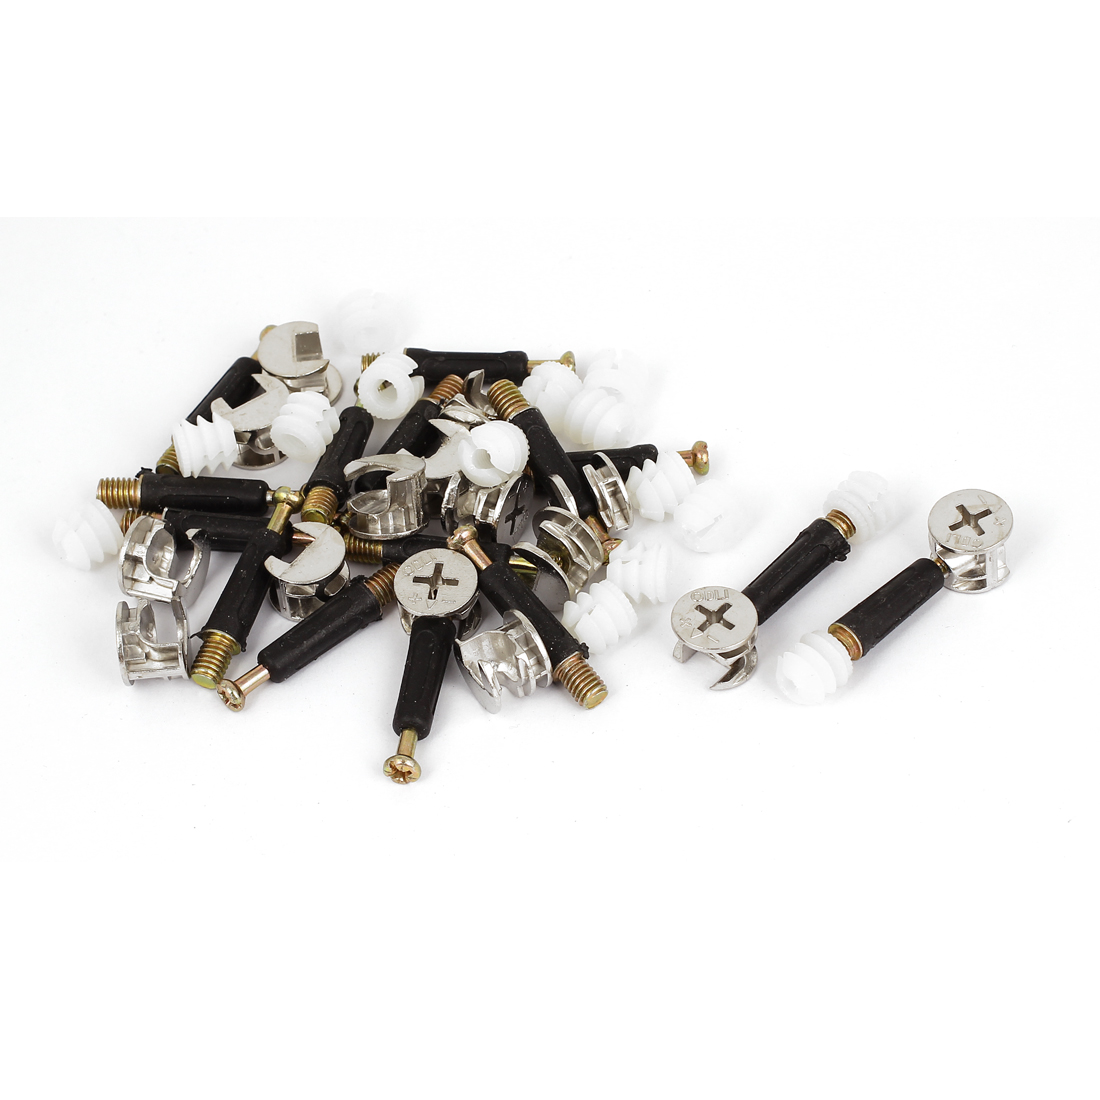 Furniture Connecting 15mm Dia Cam Fittings Pre-inserted Nuts Dowels 15 Sets